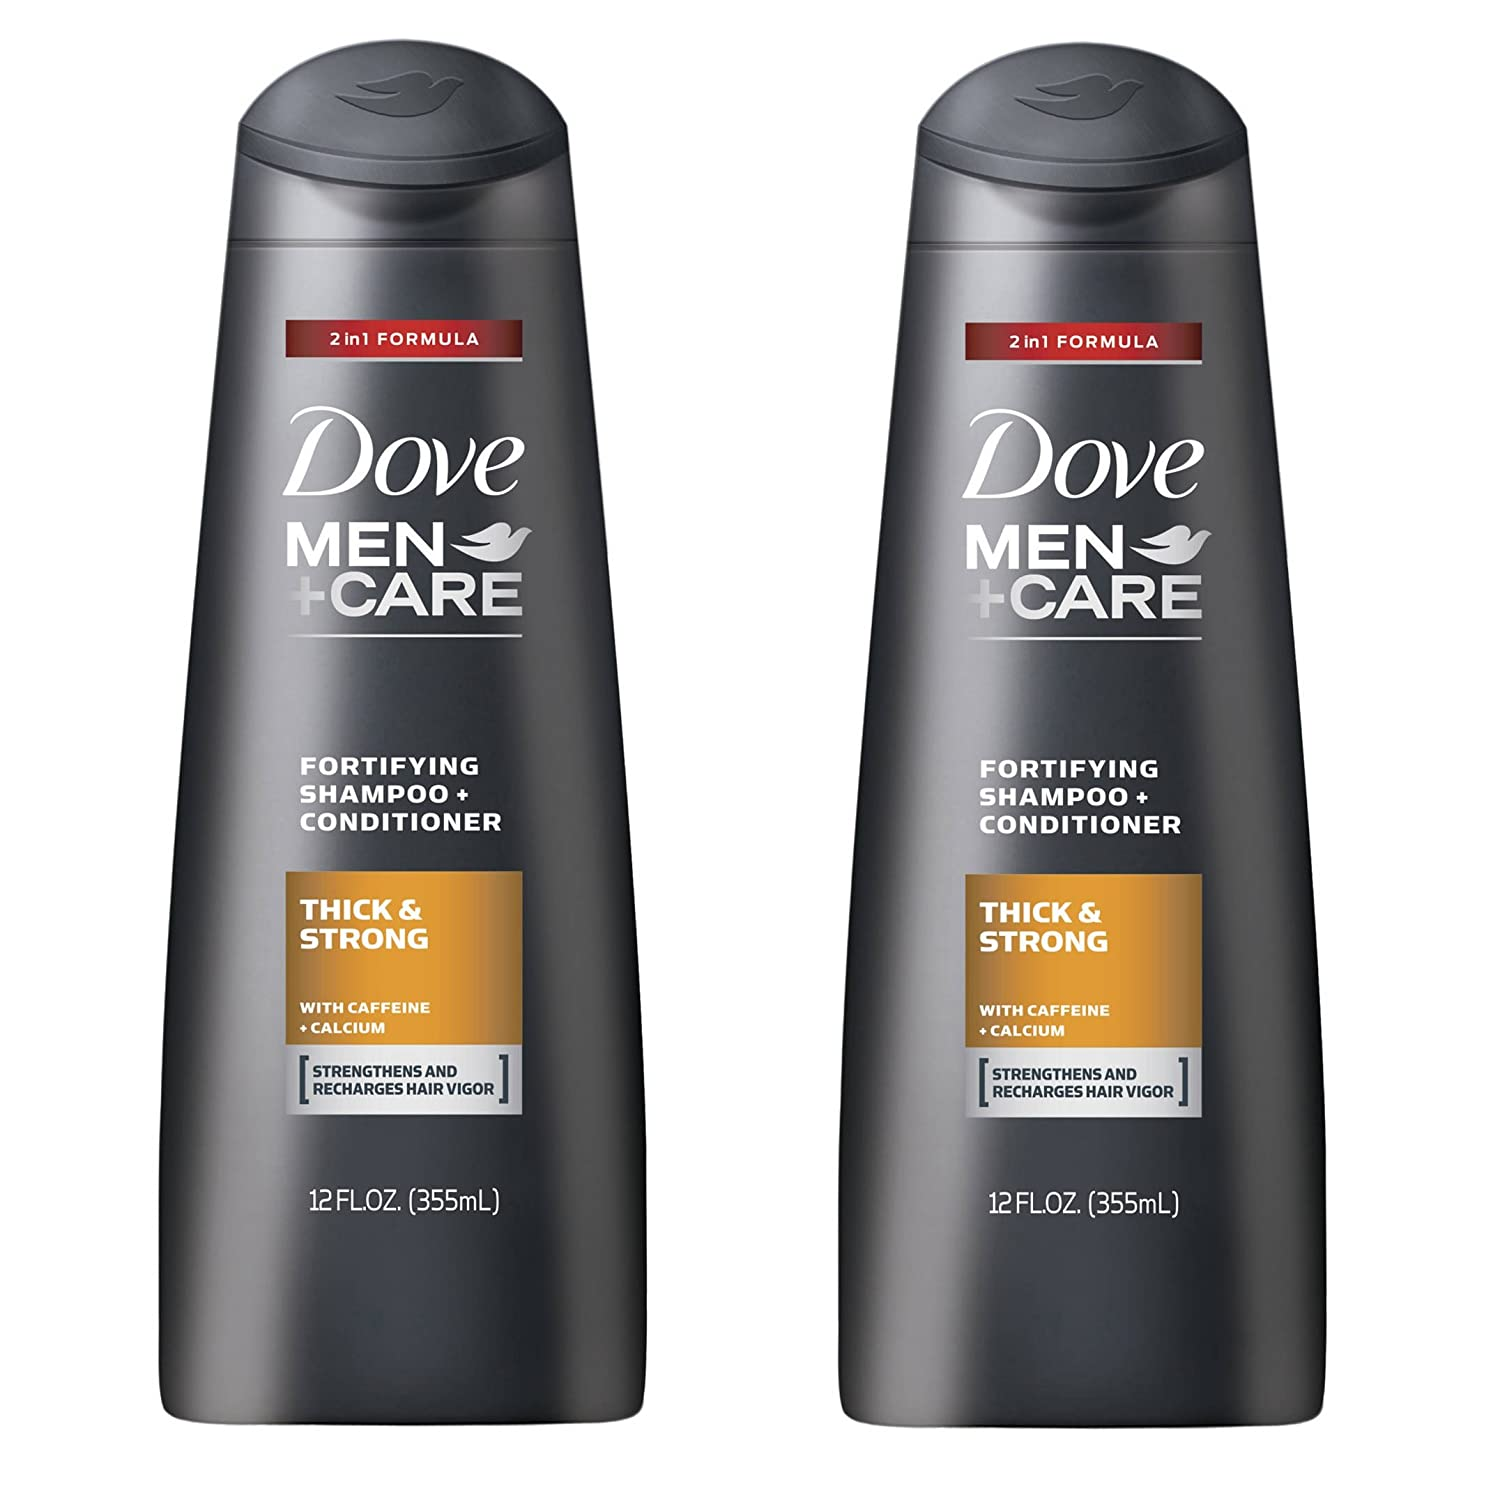 Dove Men+Care Thick and Strong Fortifying 2in1 Shampoo and Conditioner 12 FL OZ - Pack of 2